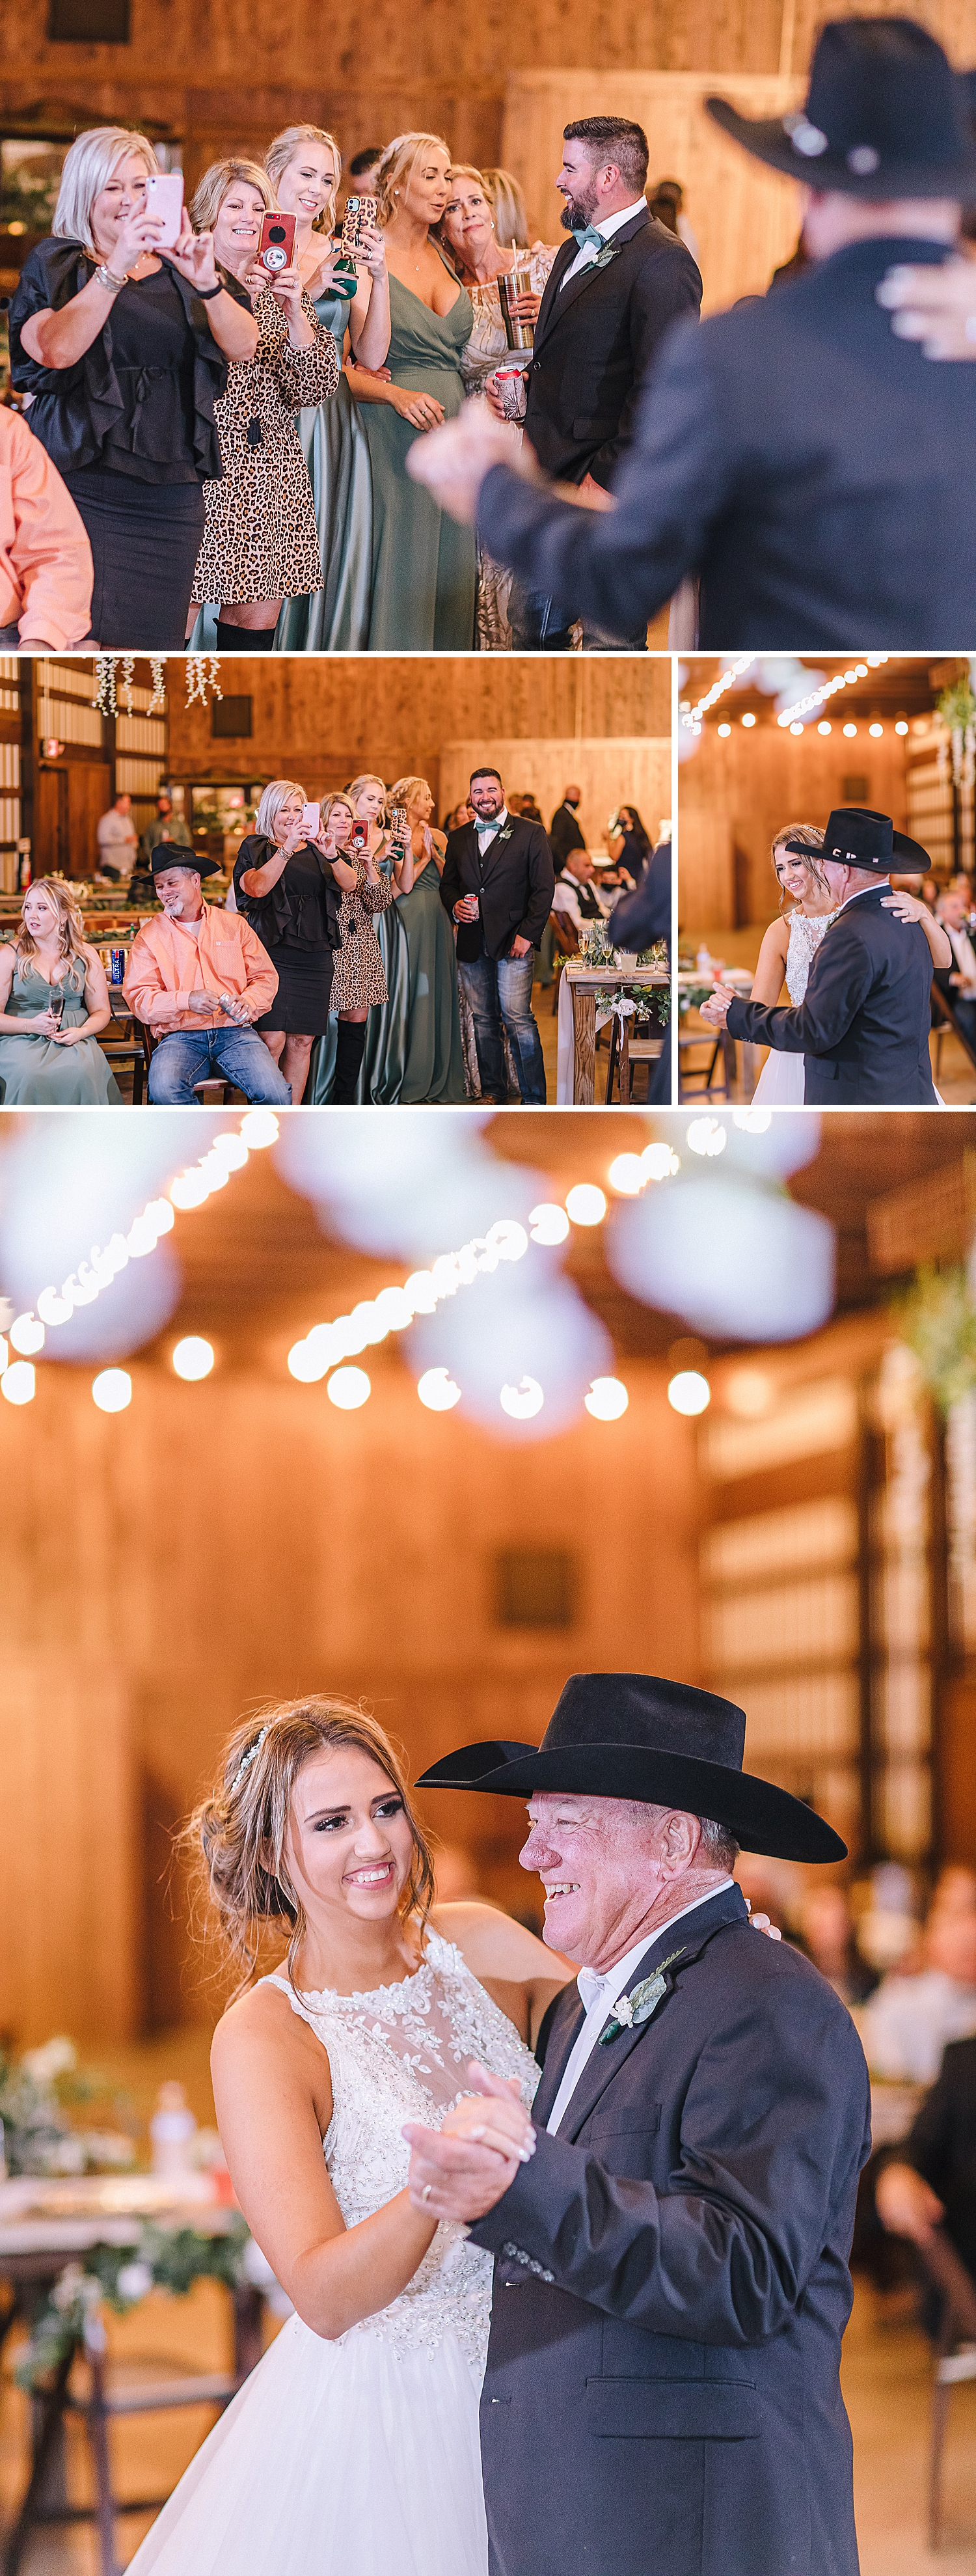 Allen-Farmhaus-New-Braunfels-Wedding-Carly-Barton-Photography_0120.jpg